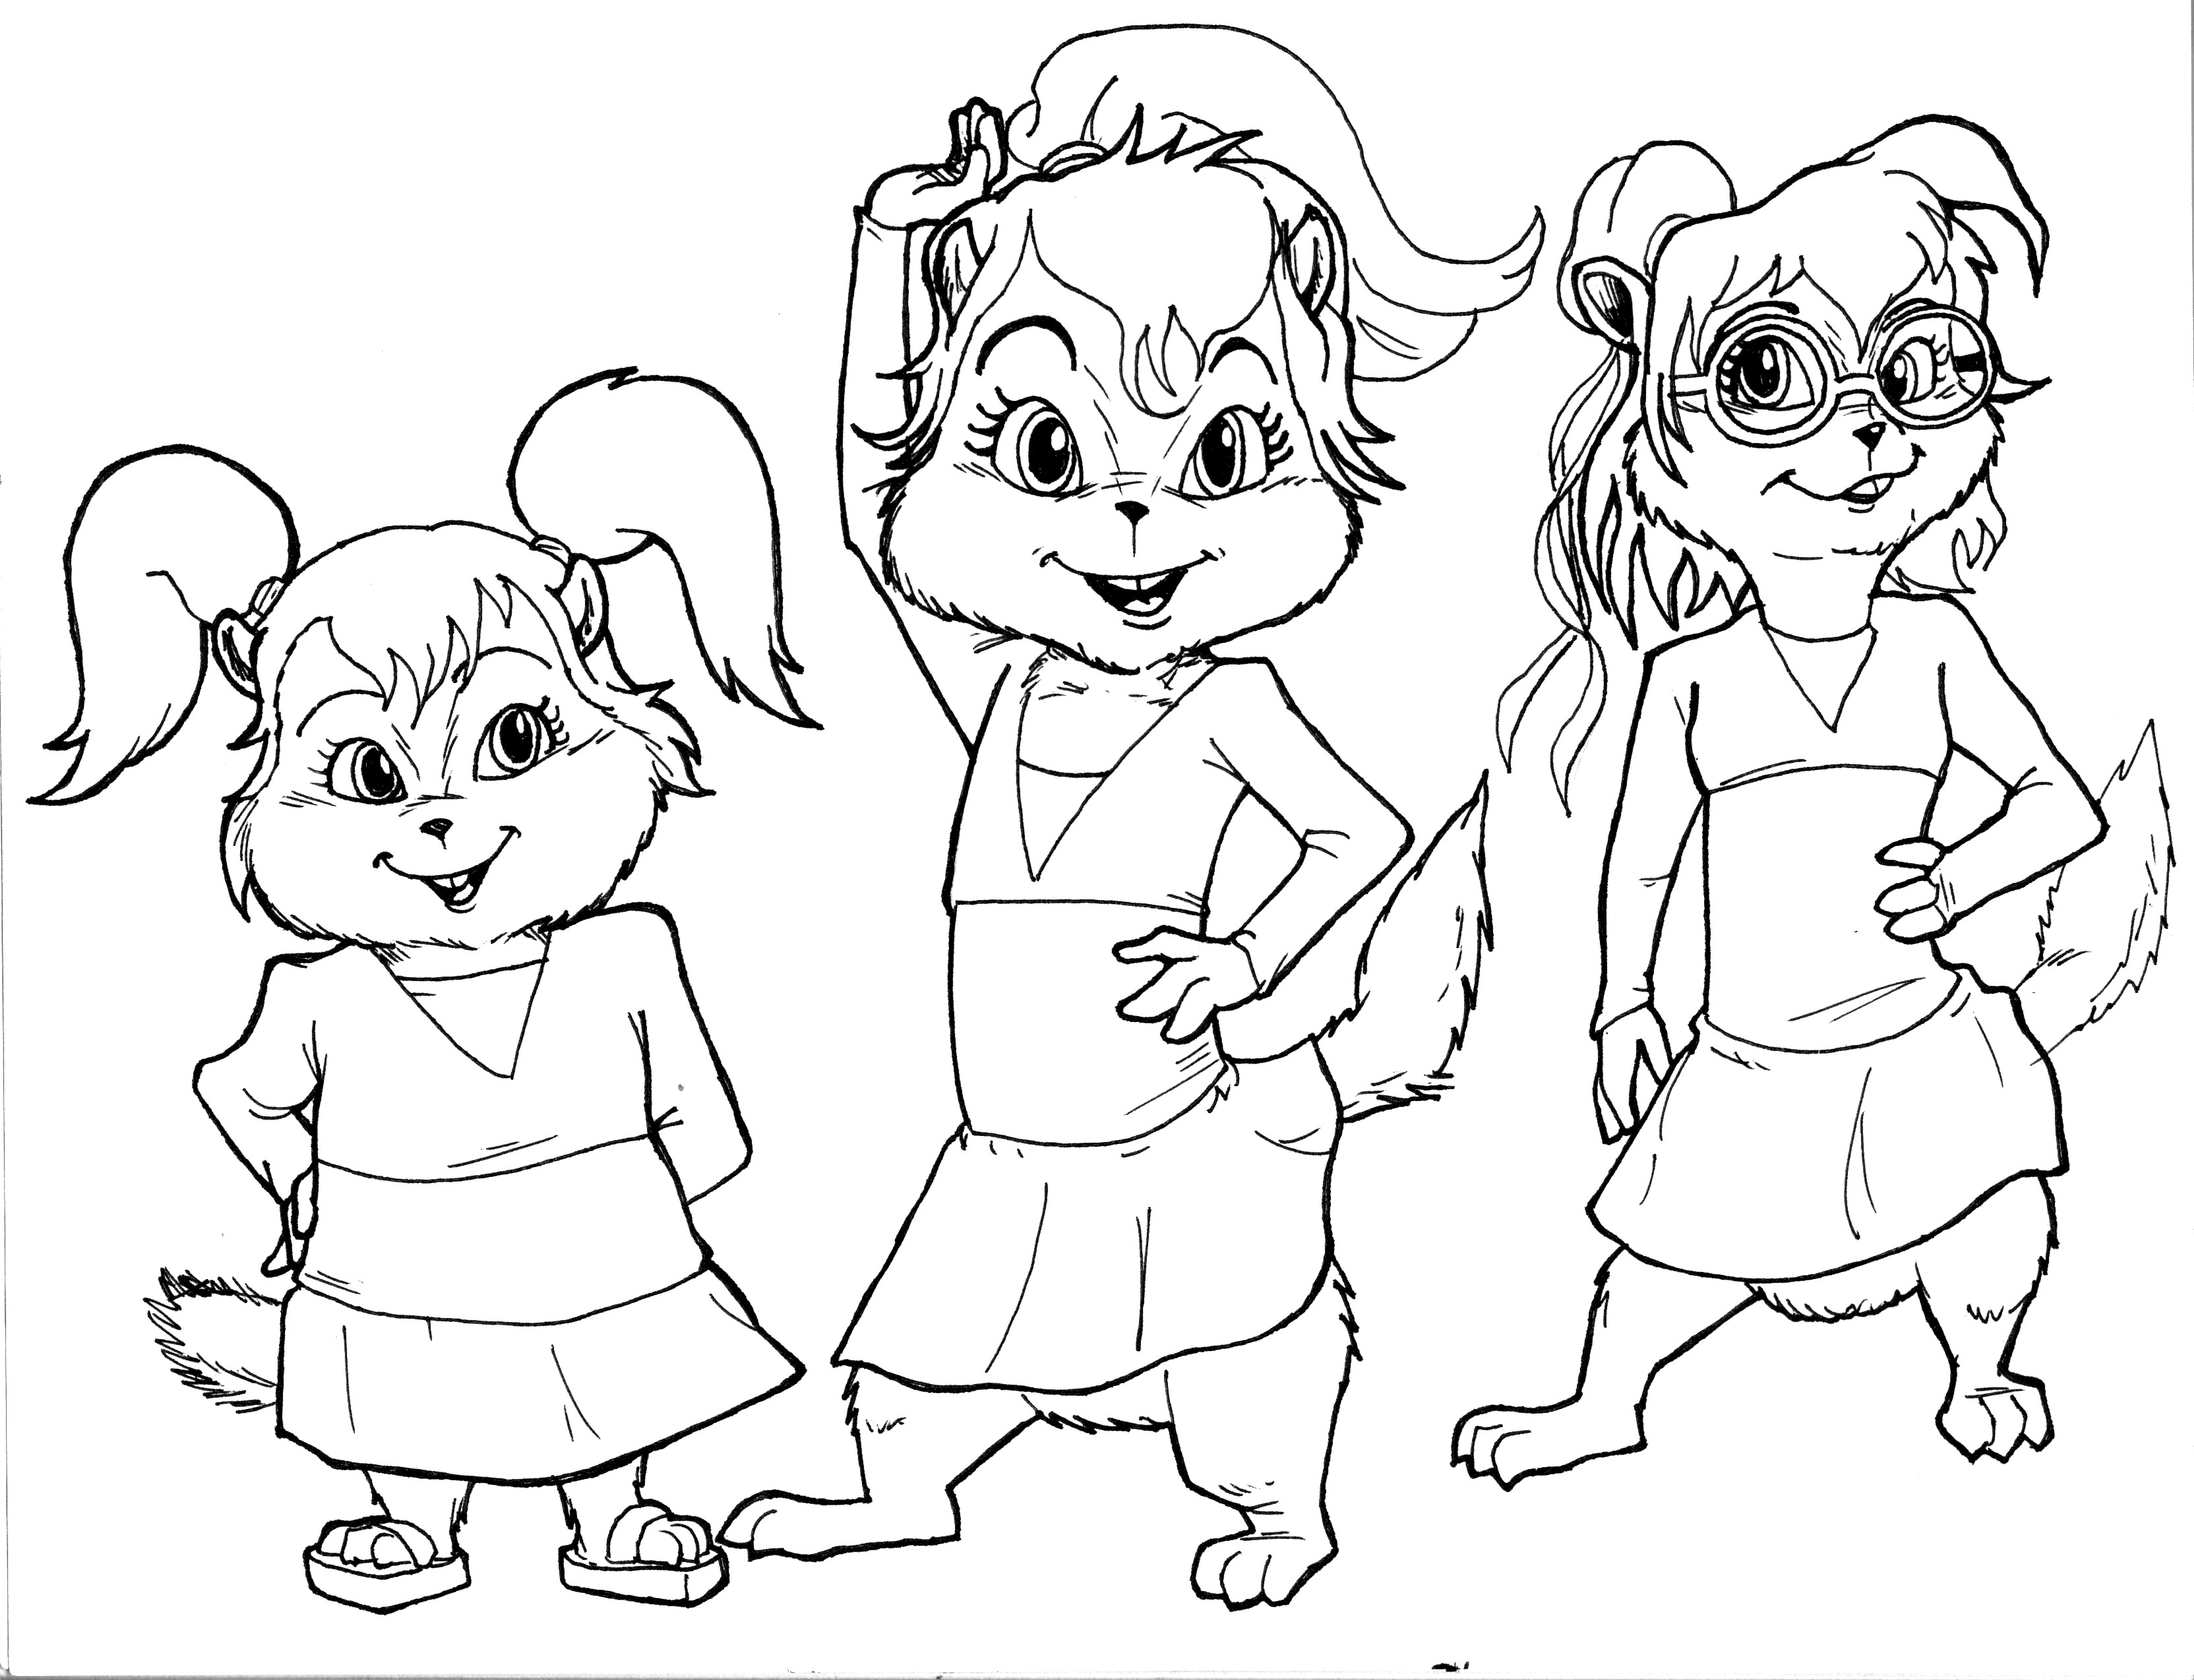 Chipettes 05 03 10Alvin And The Chipmunks And The Chipettes Coloring Pages